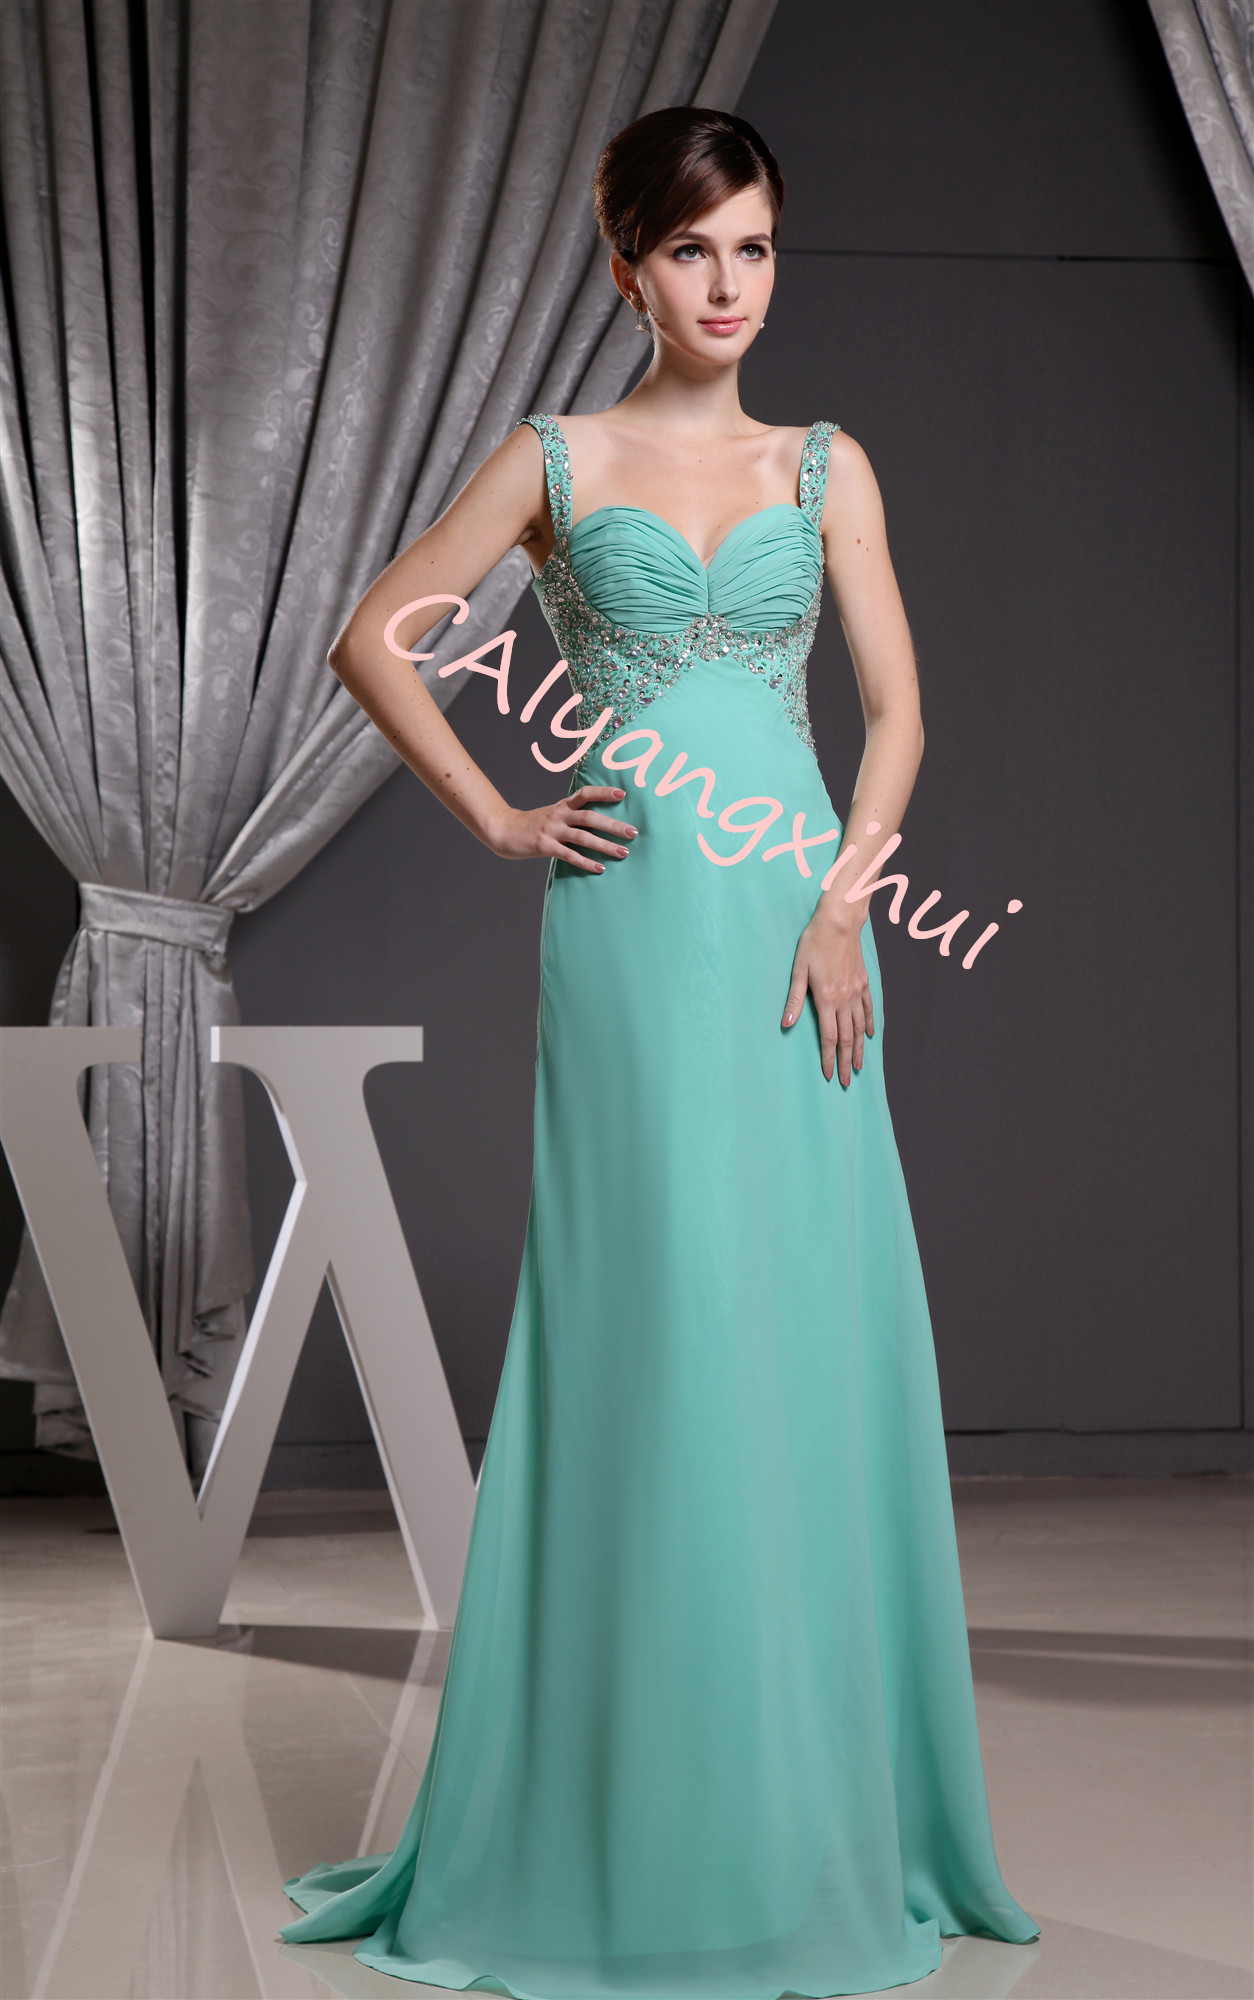 Women's Pleated Sweetheart Chiffon Party Evening Dress Bridesmaid Dress